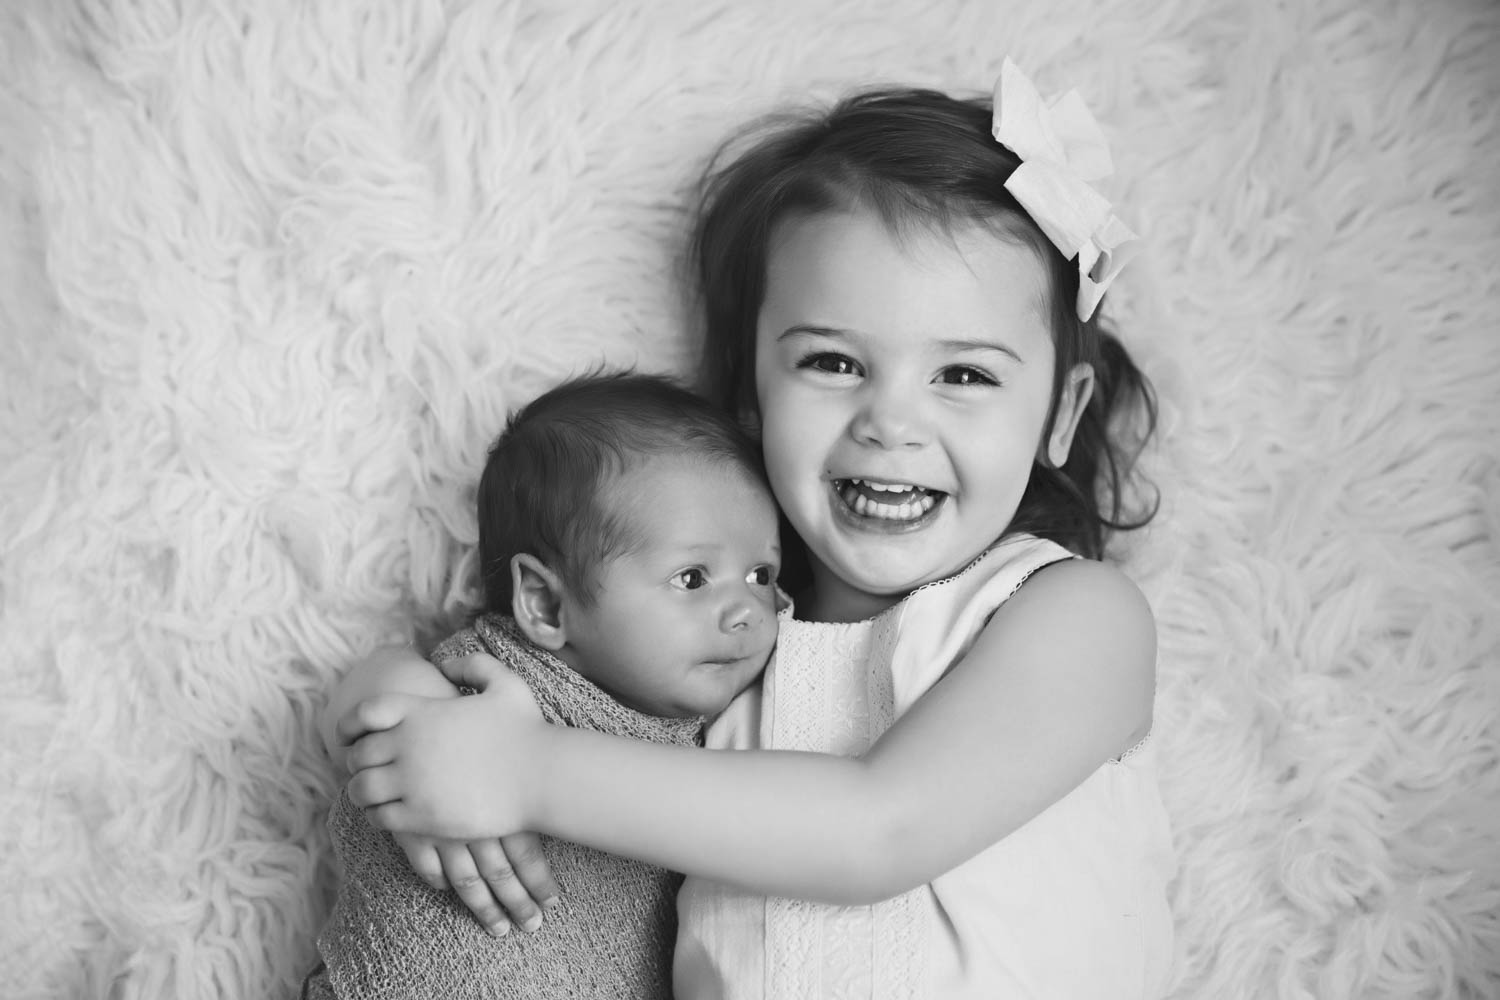 Big sister and newborn baby brother in Atlanta natural light studio